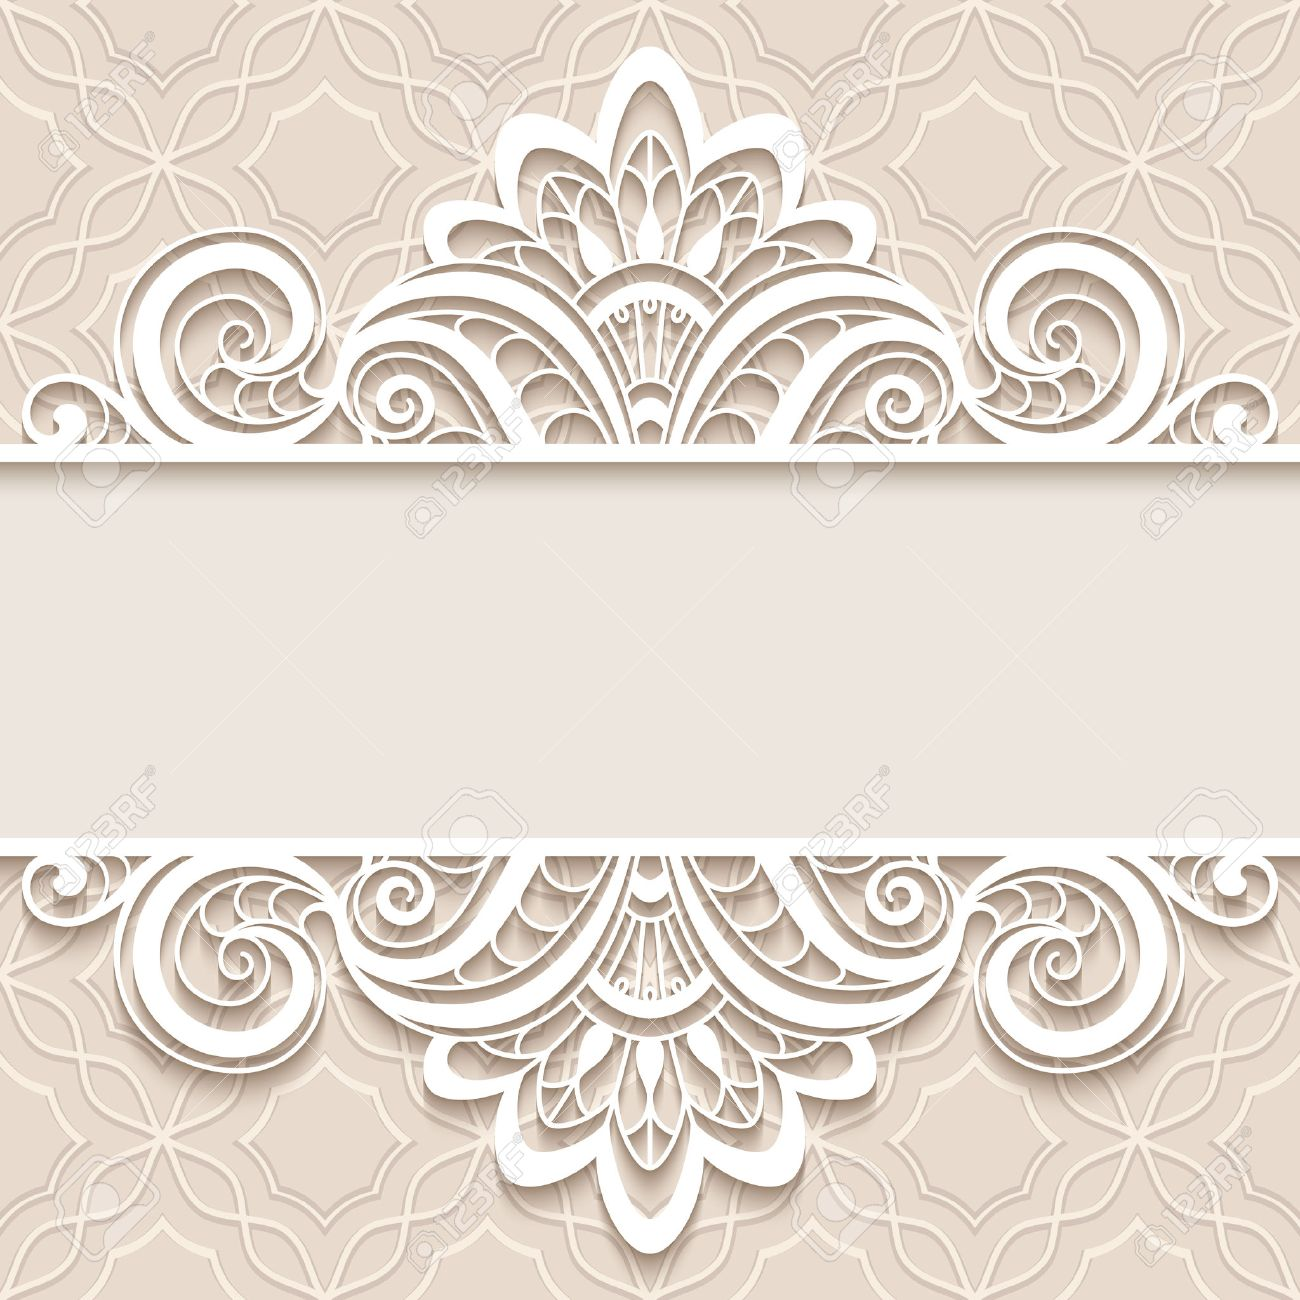 Elegant Background With Border Lace Ornament, Divider, Header, Decorative  Paper Lace Frame,